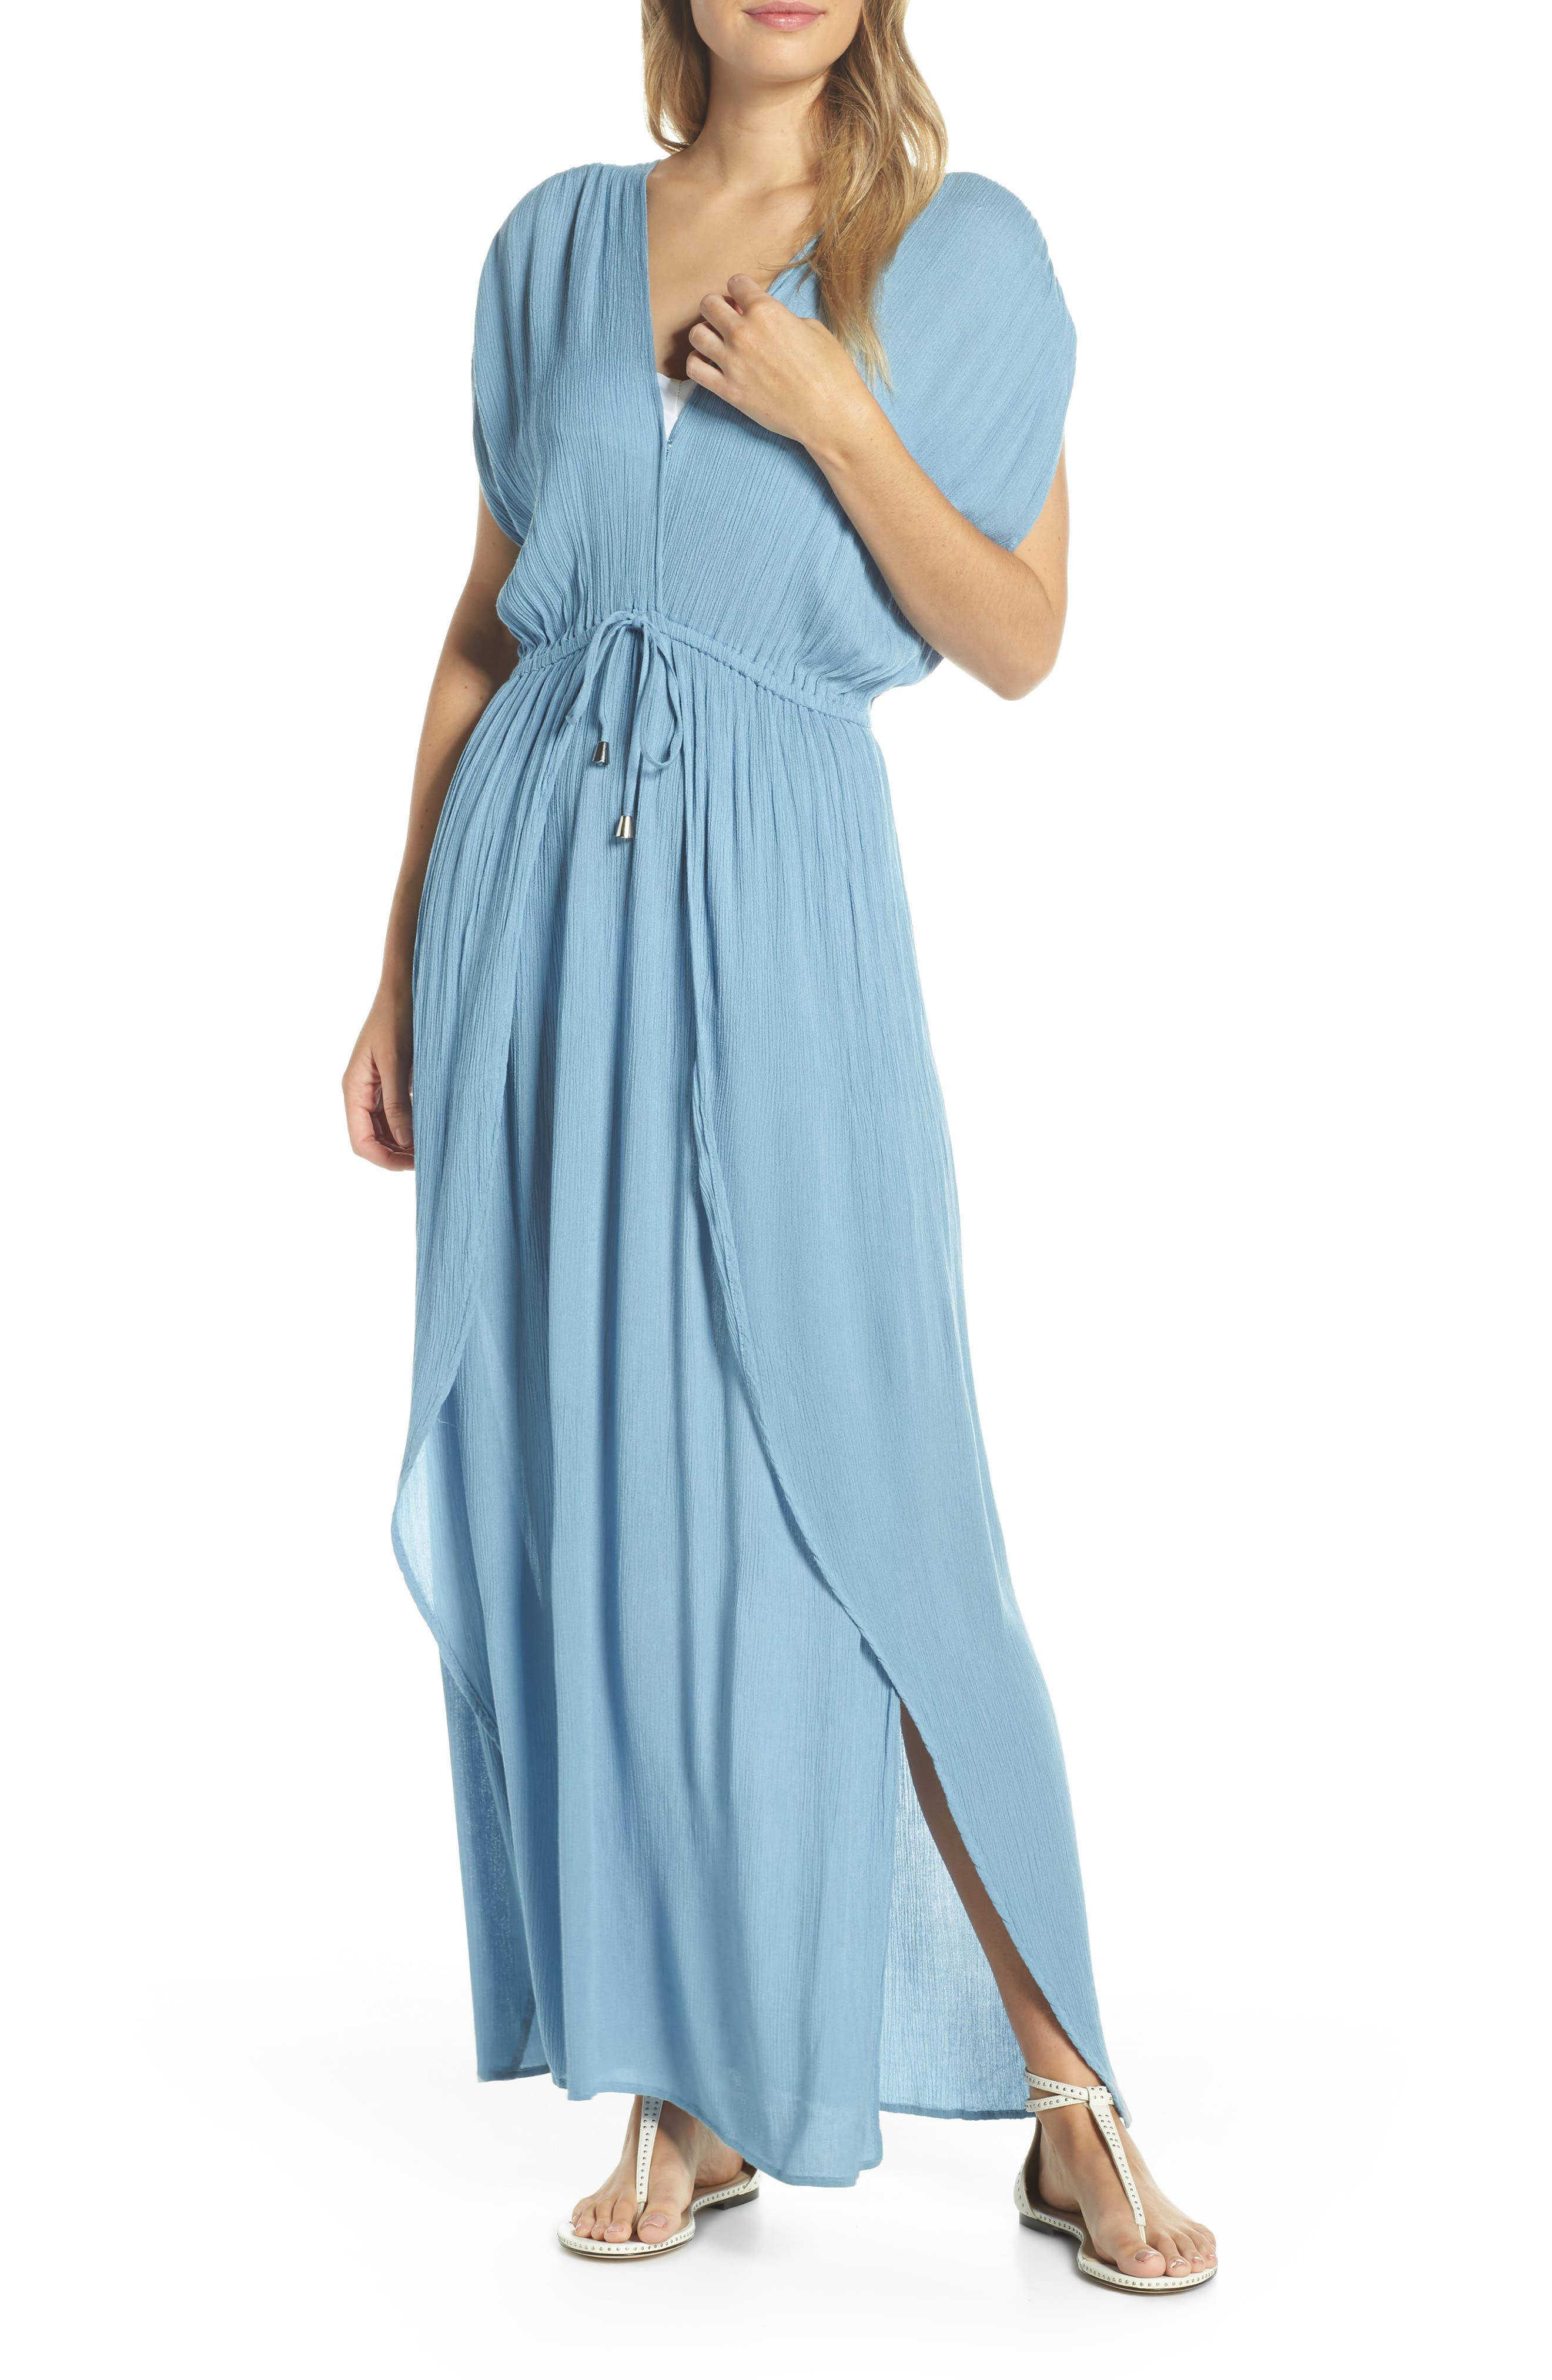 70s Prom, Formal, Evening, Party Dresses Womens Elan Wrap Maxi Cover-Up Dress Size Medium - Blue $68.00 AT vintagedancer.com